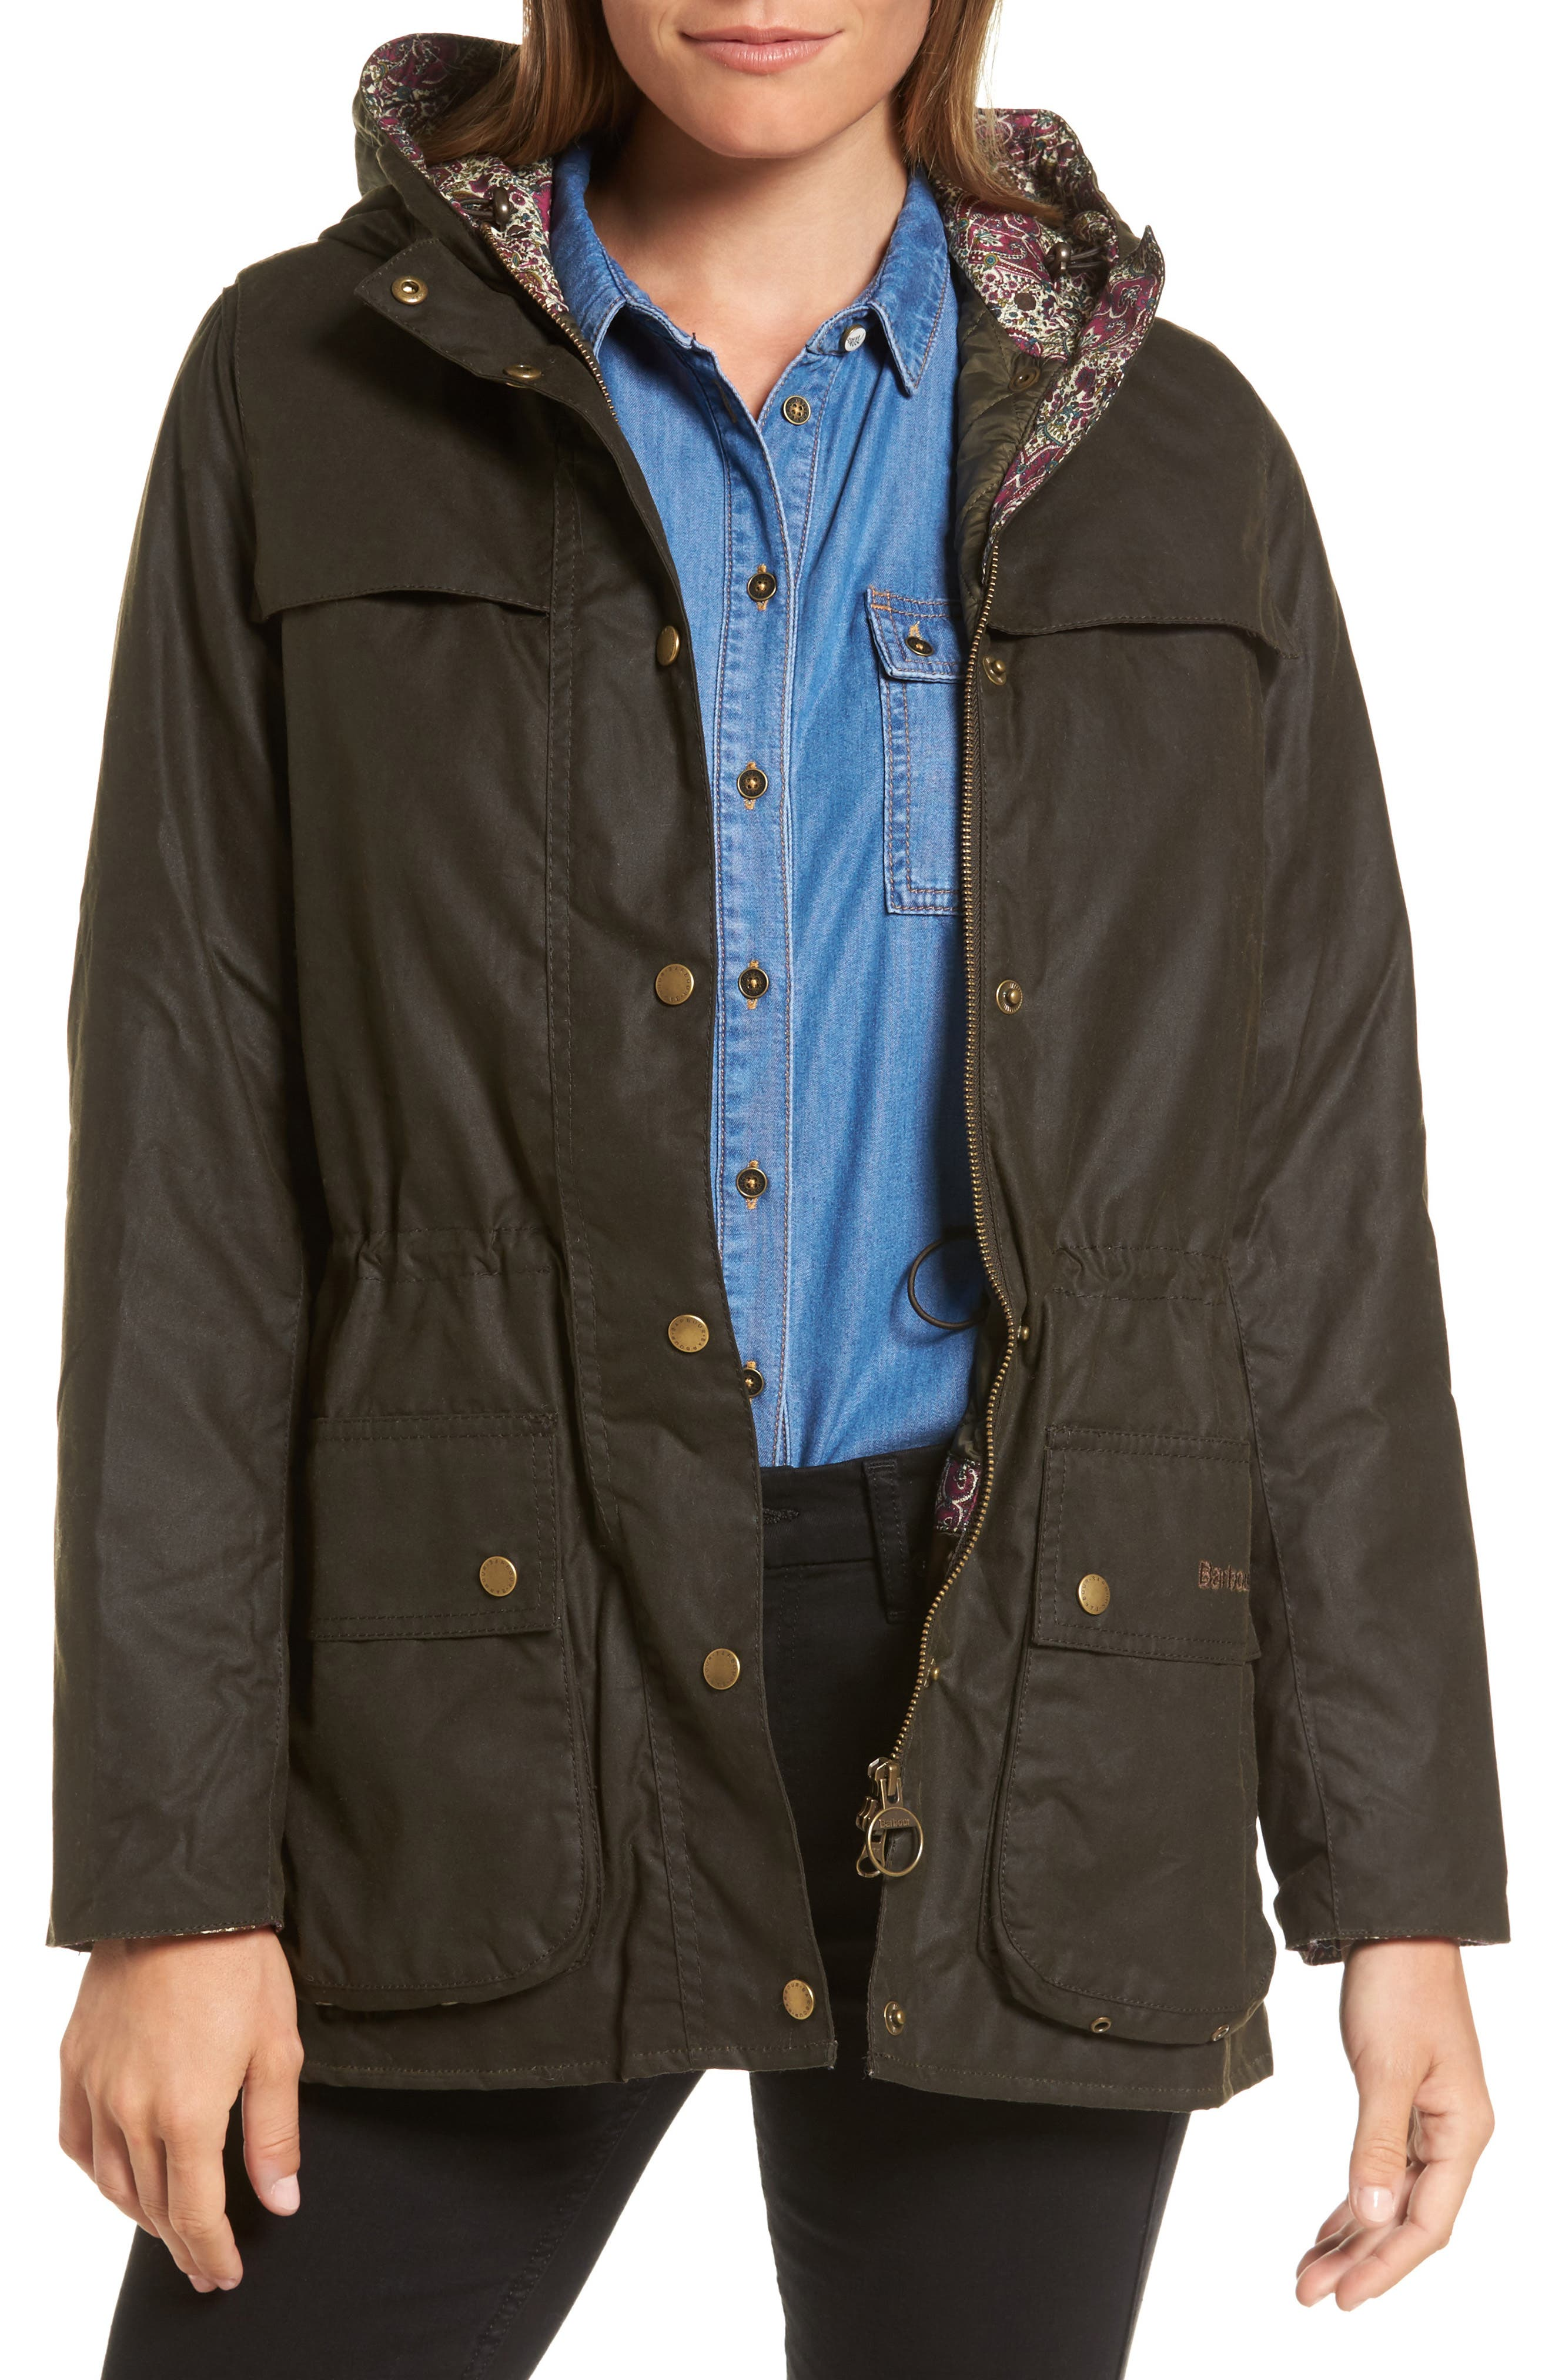 x Liberty Blaise Hooded Waxed Canvas Jacket,                         Main,                         color, Olive